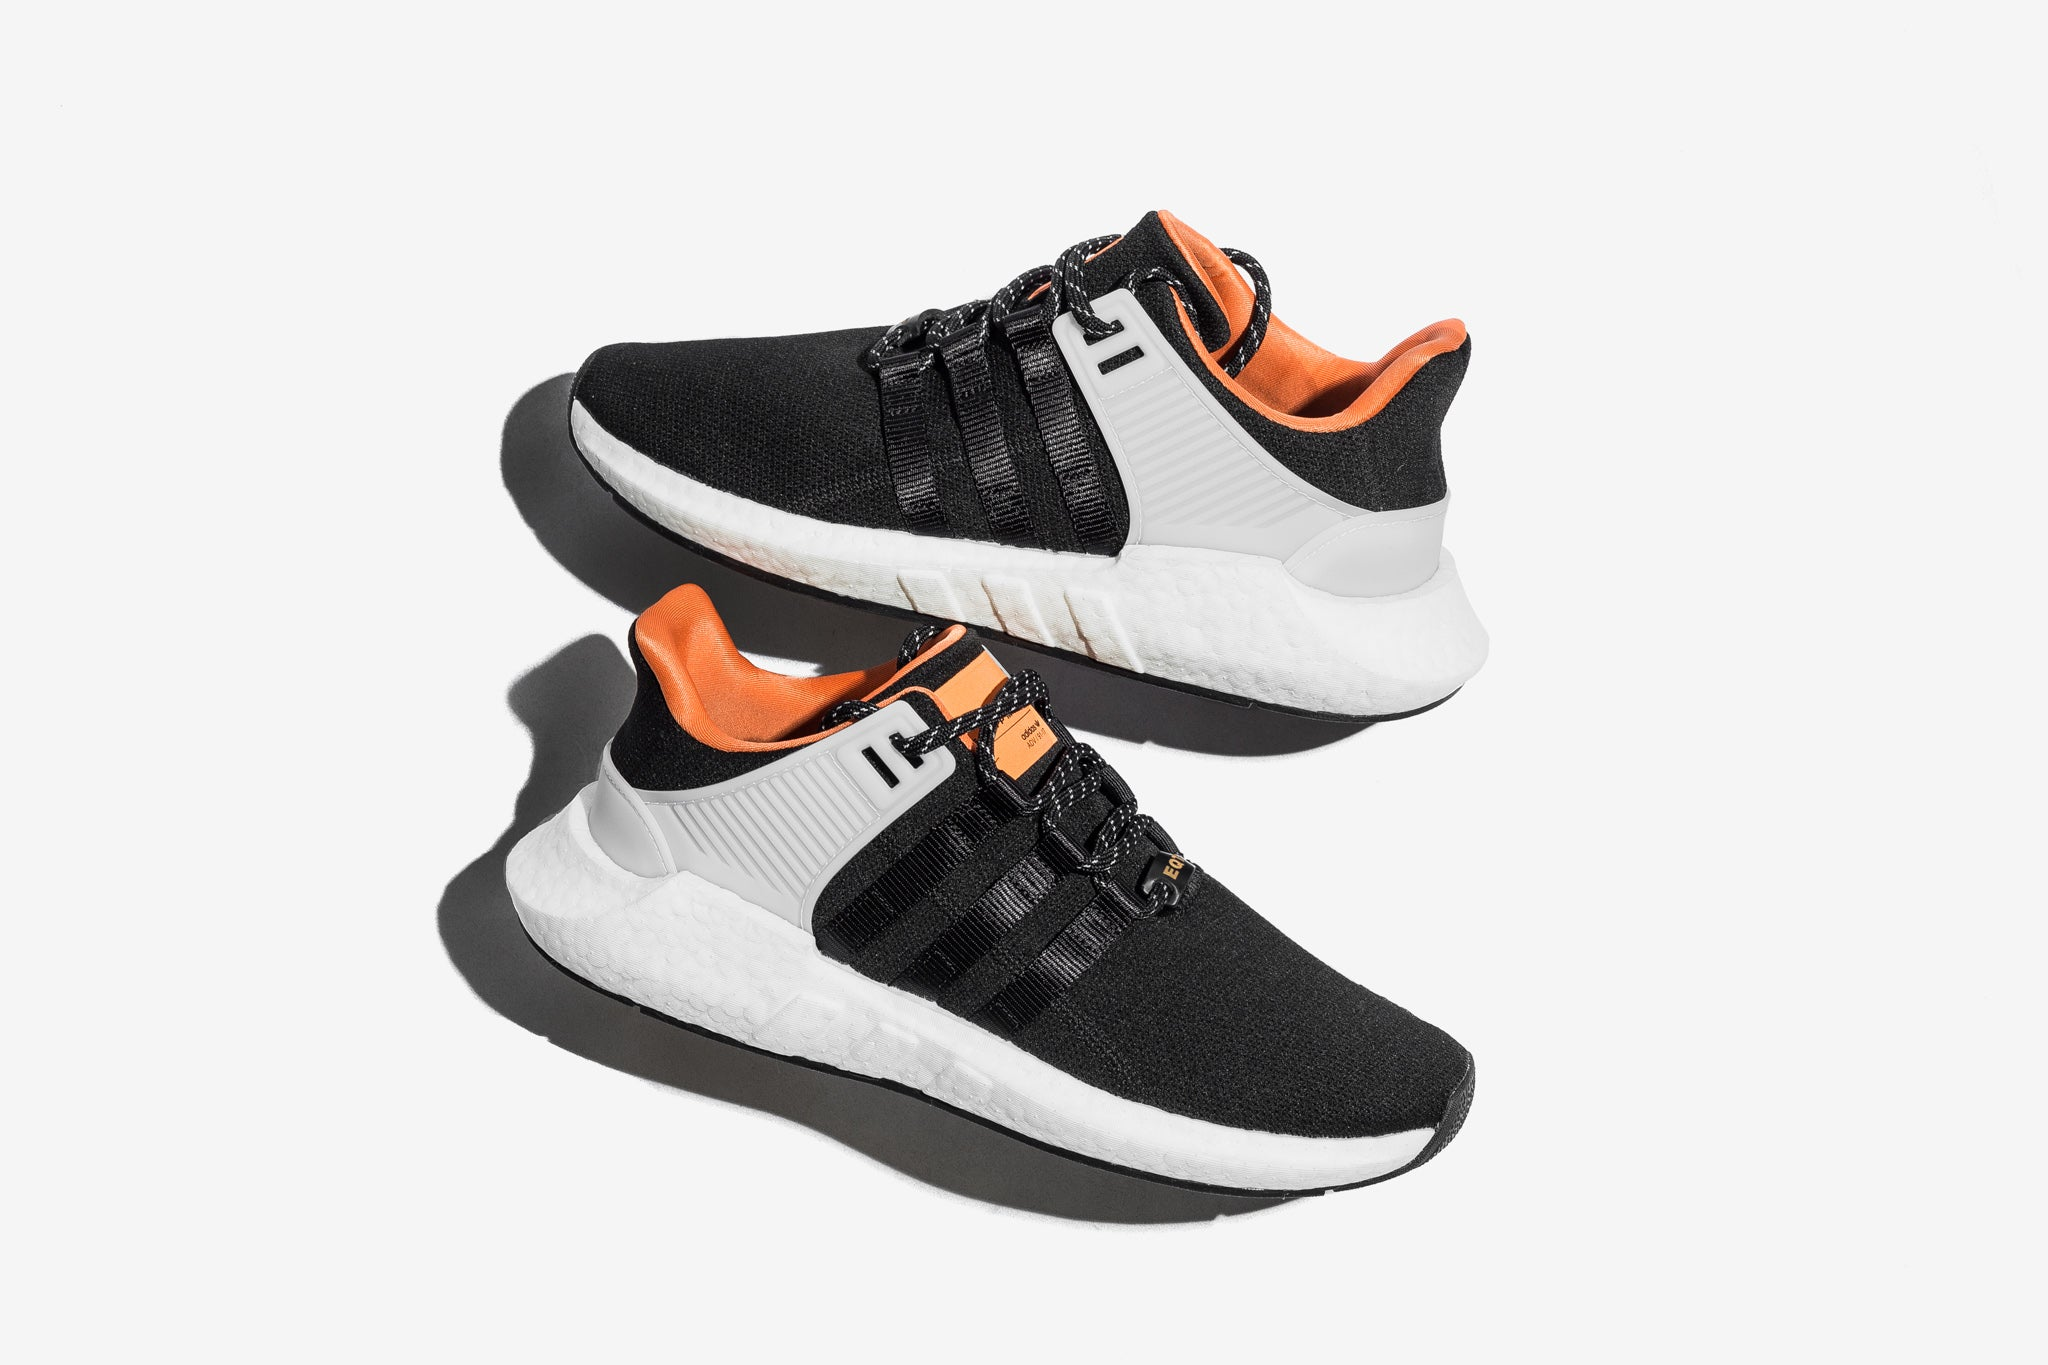 """95d881b2aac1 The adidas EQT Support 93 17 """"Welding Pack"""" Edition offers an orange"""